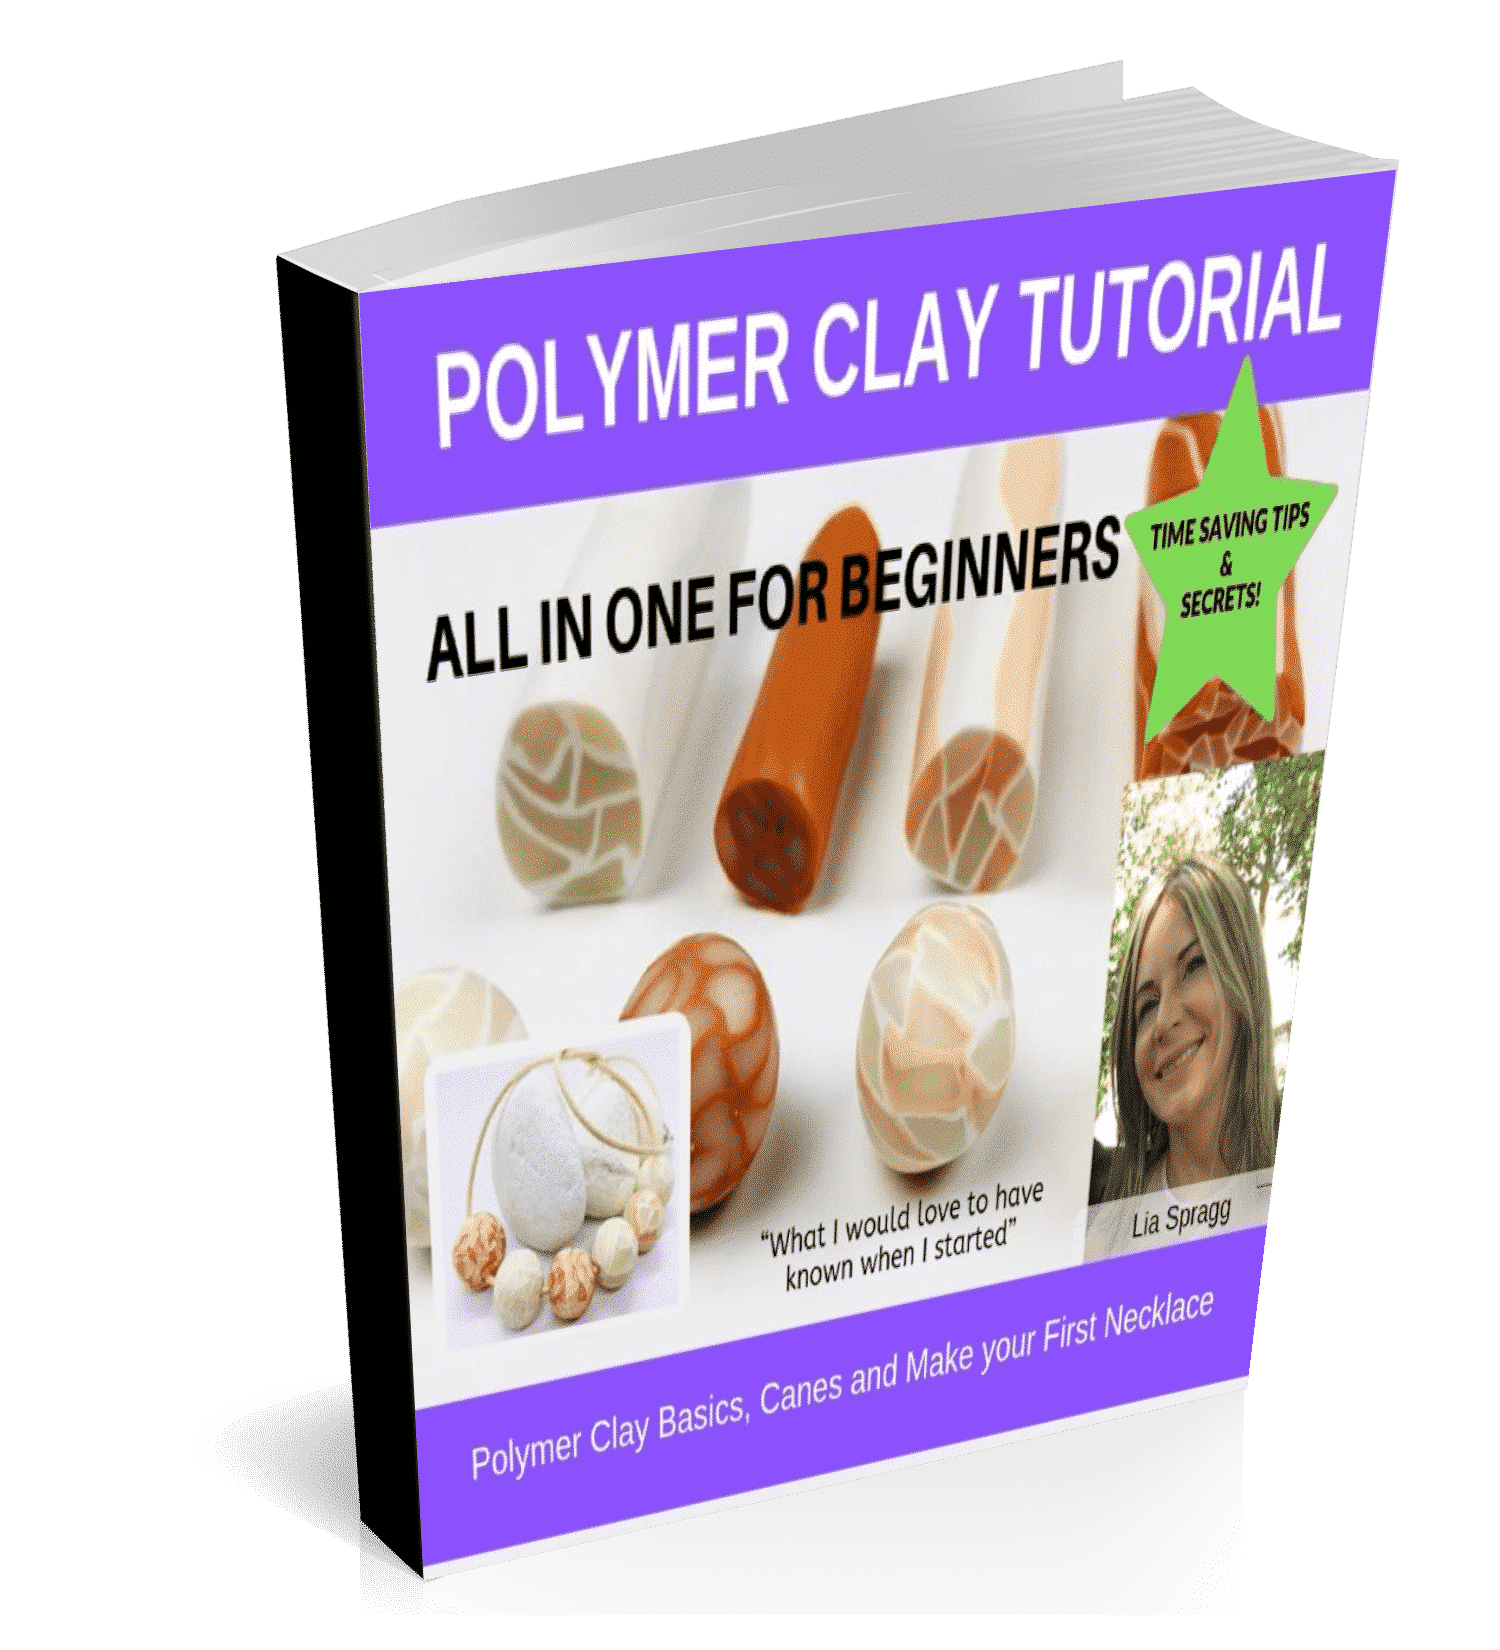 Polymer Clay Tutorial All In One